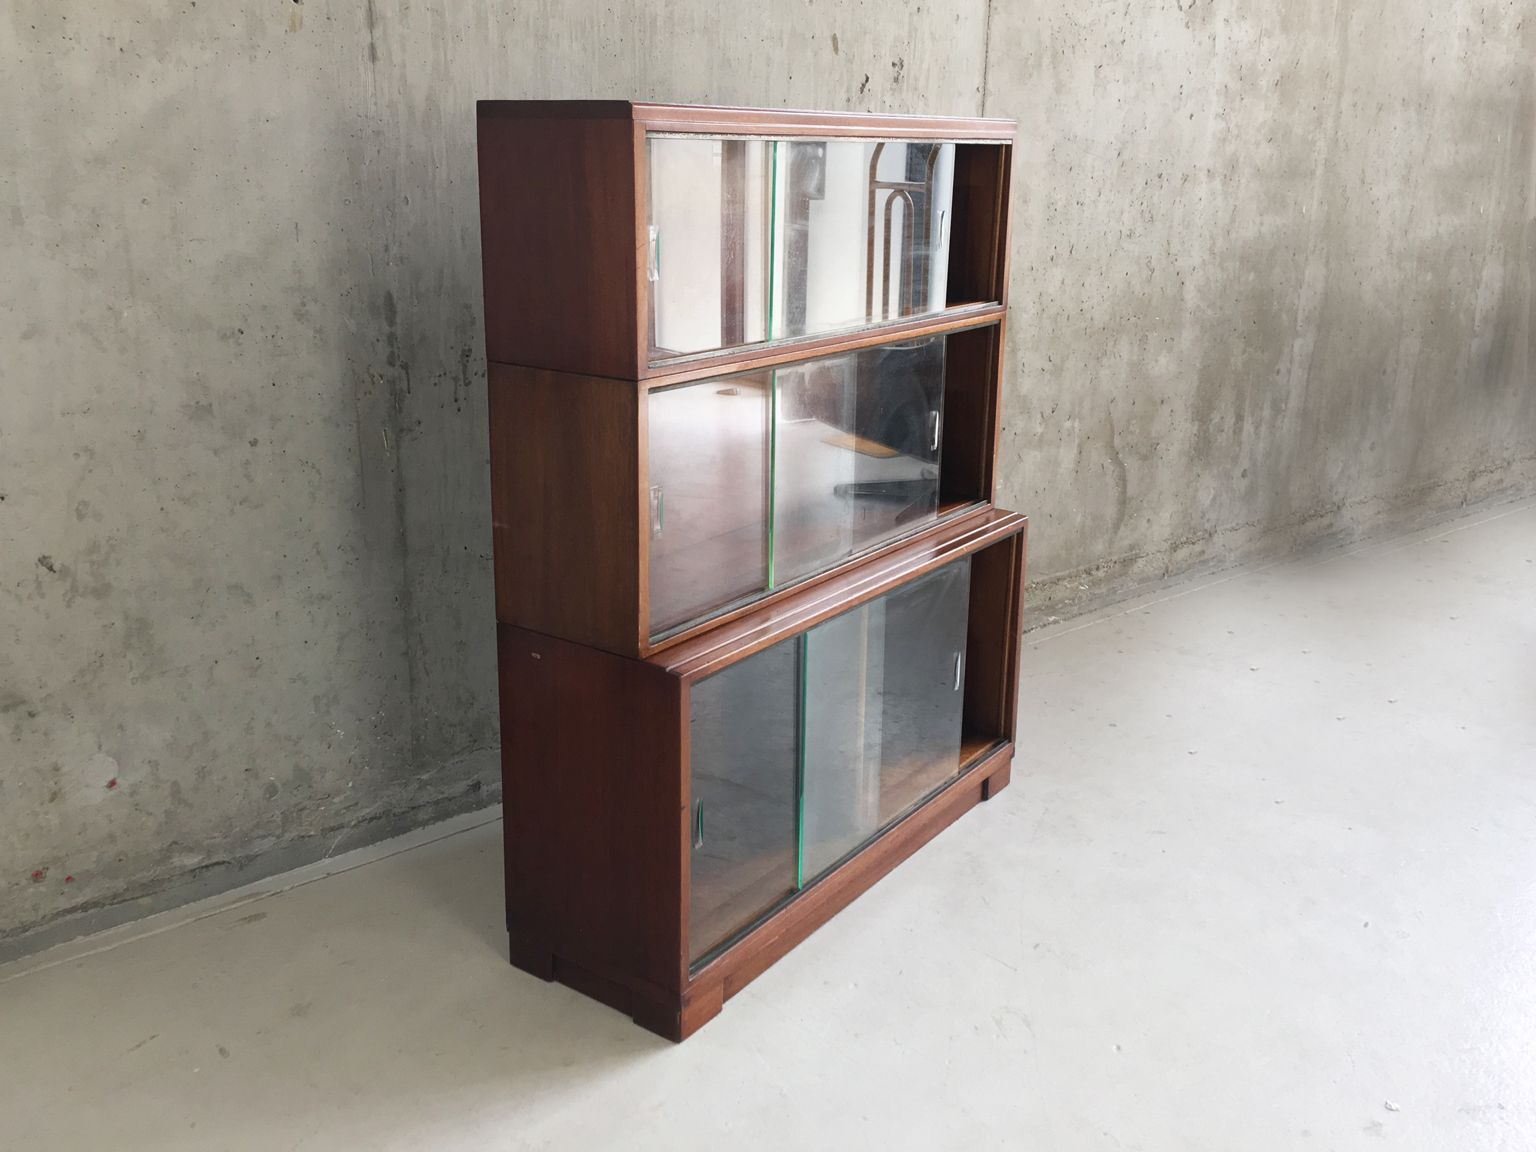 3tier Bookcase With Sliding Glass Doors From Minty, 1960s